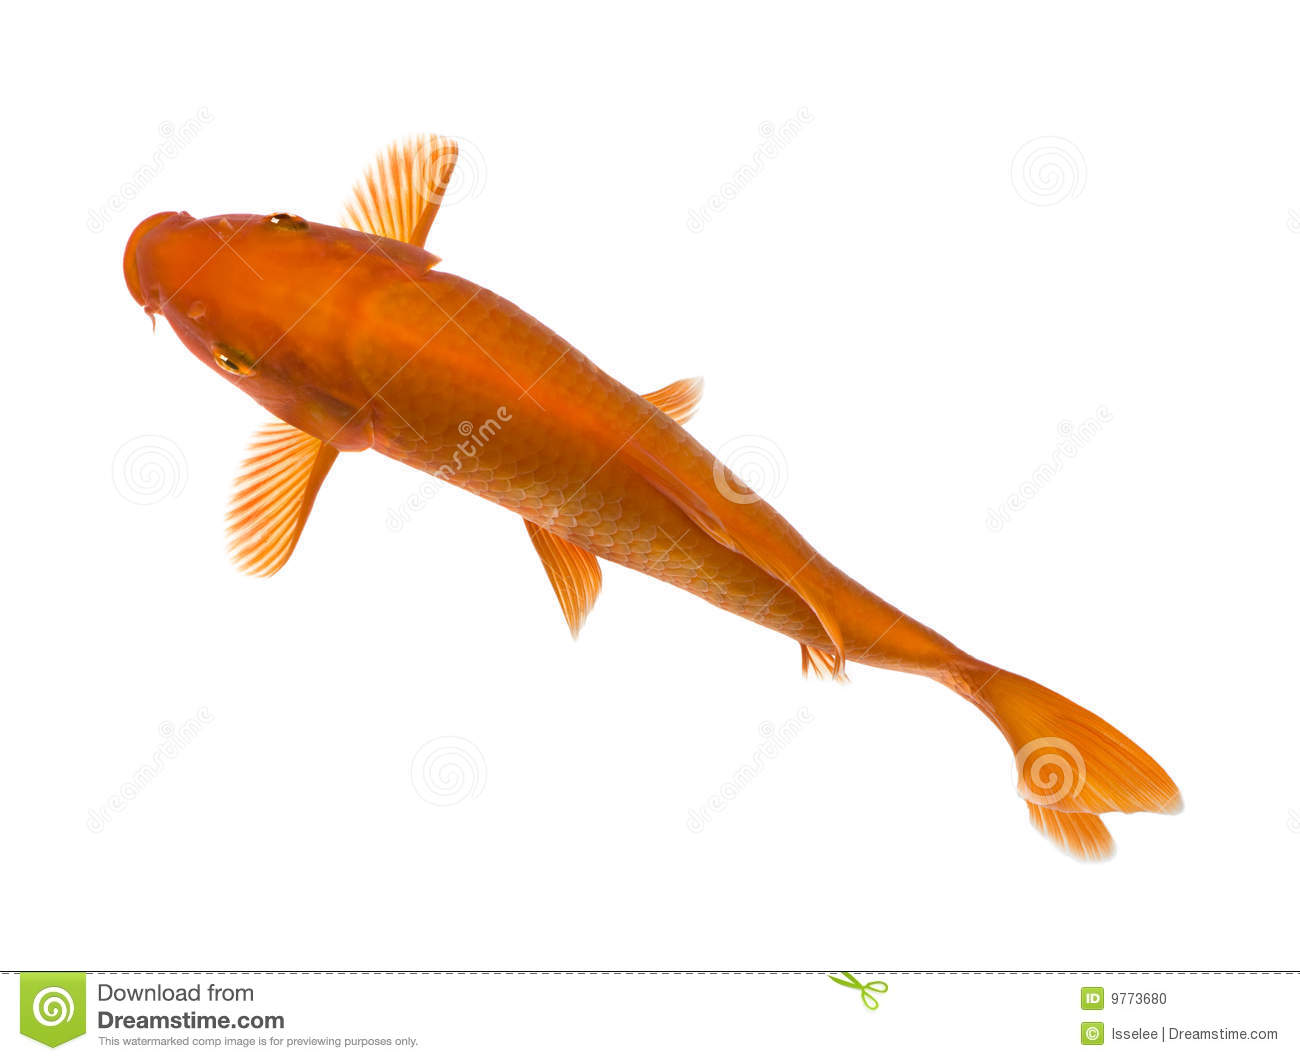 Orange koi cyprinus carpio stock photo image 9773680 for Cyprinus carpio koi